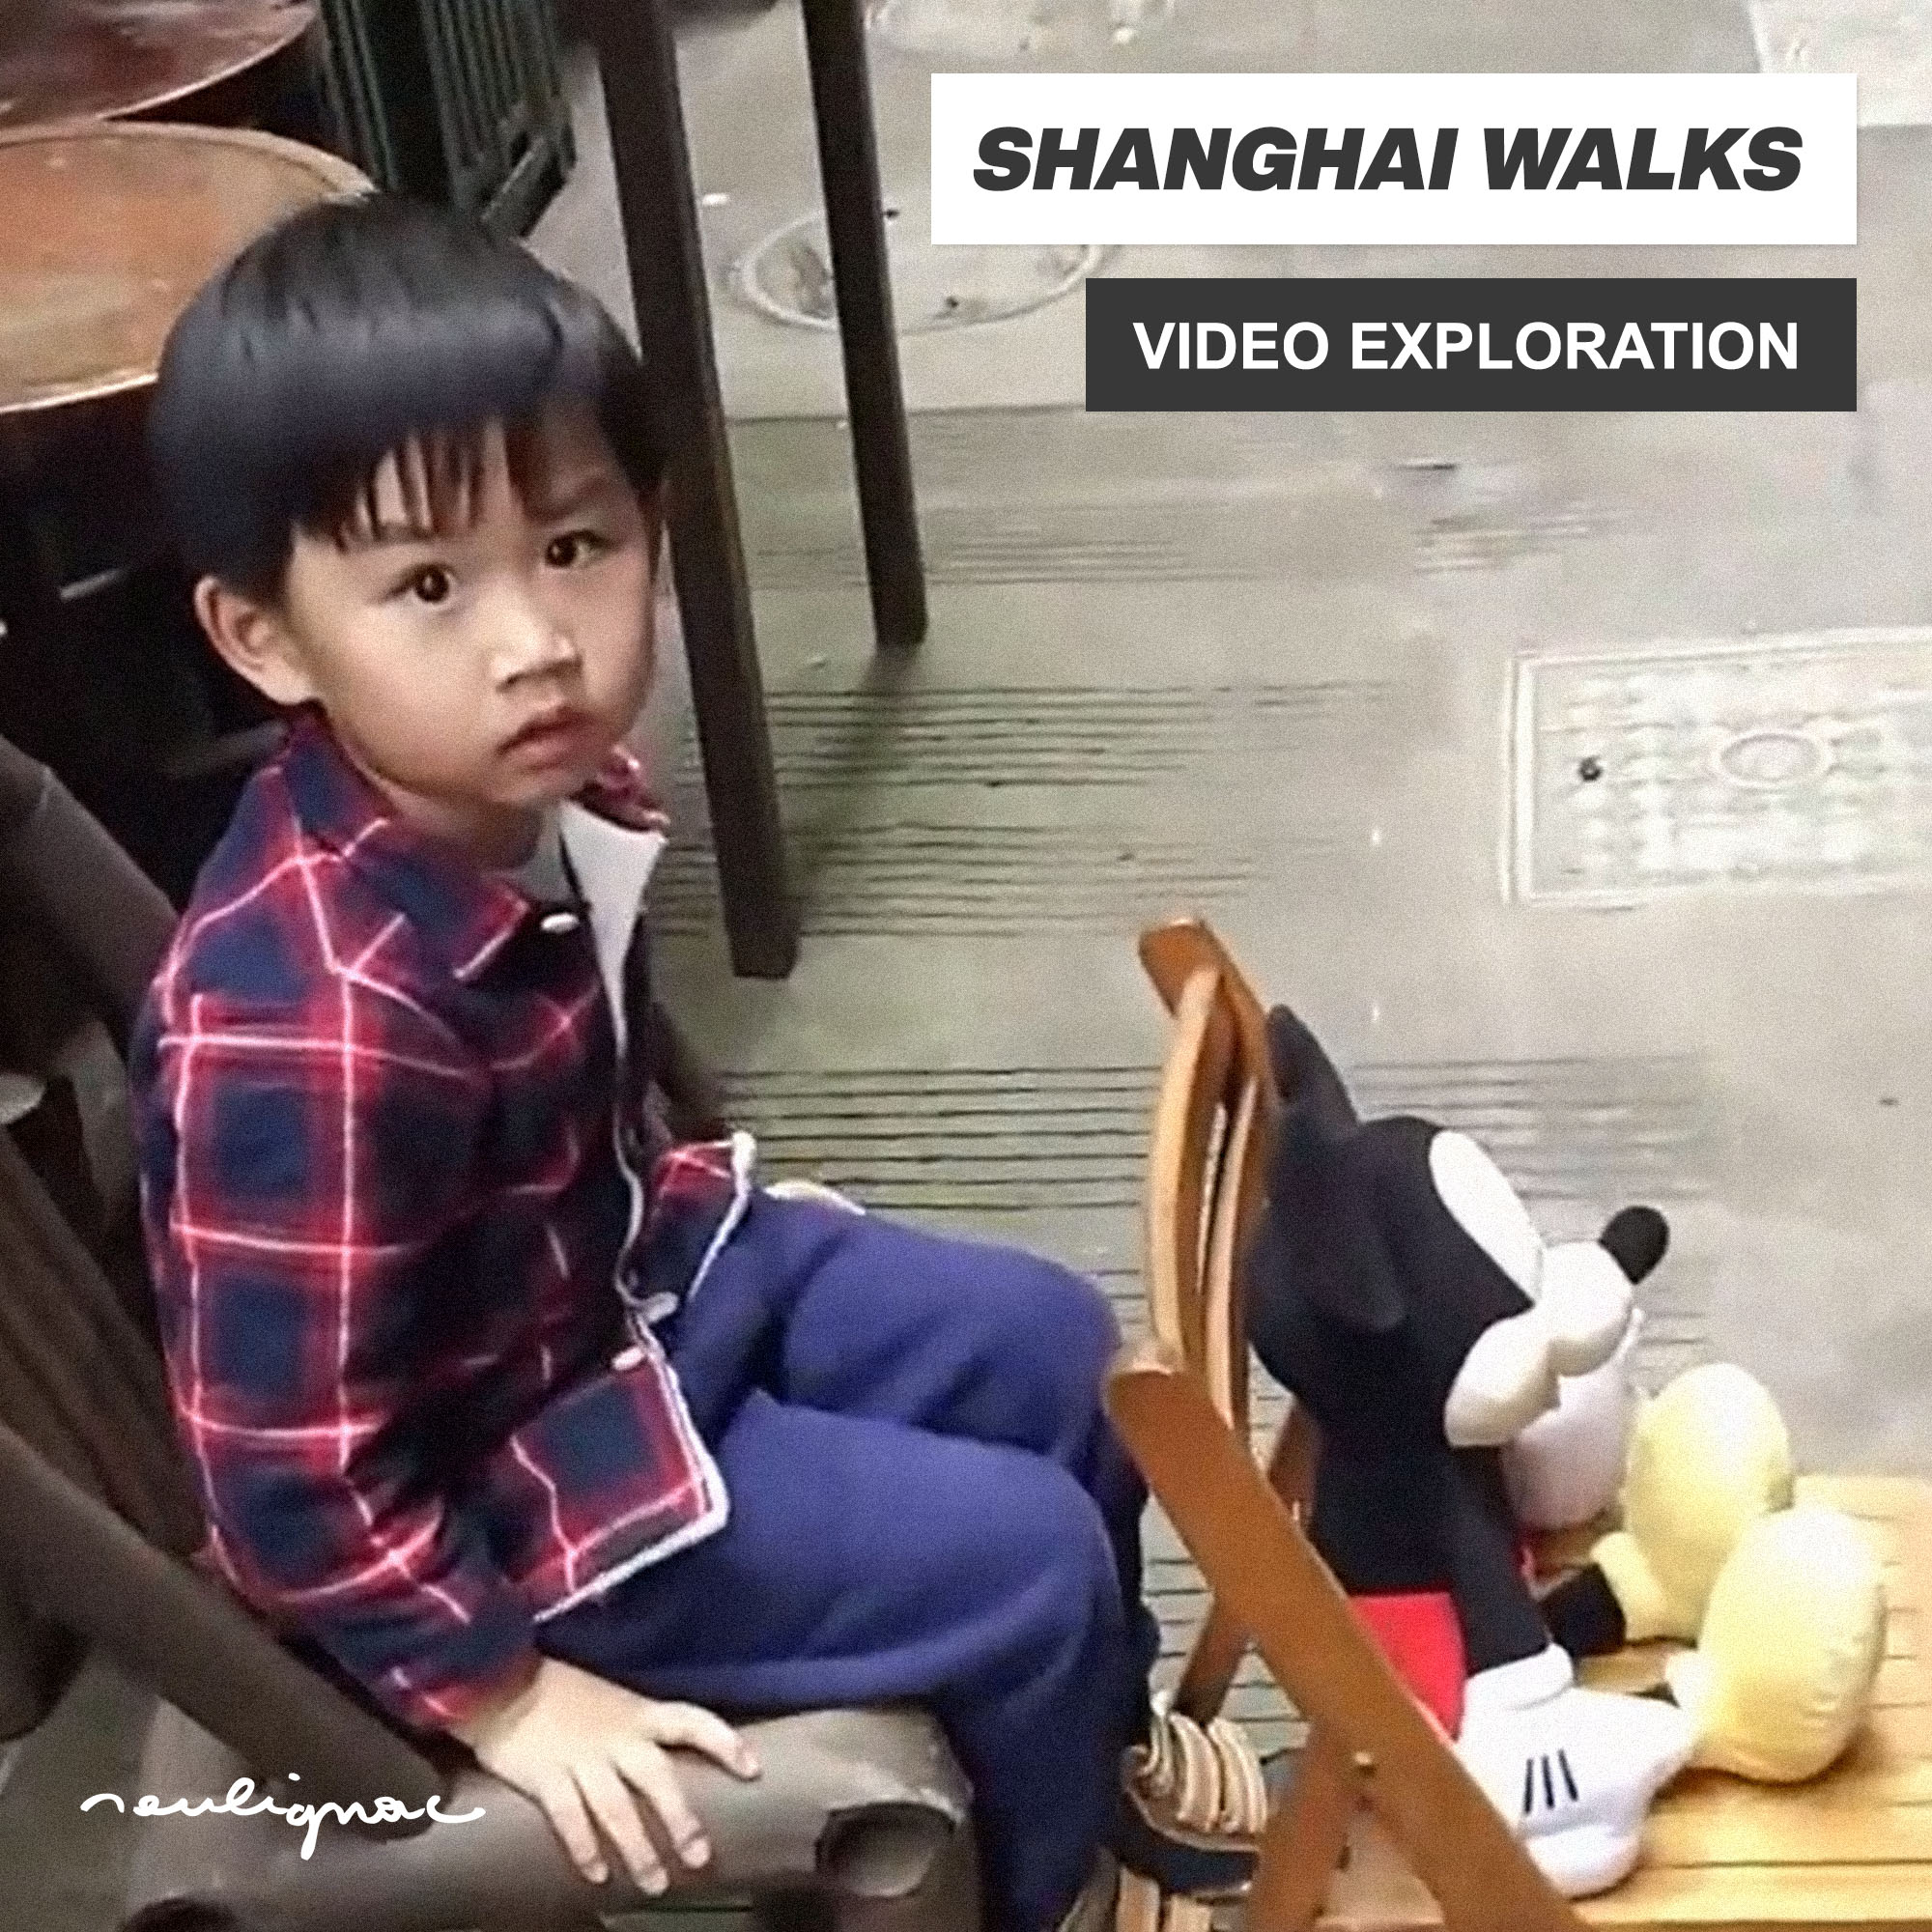 Shanghai Walks - Videos by François Soulignac - Soic Miterne